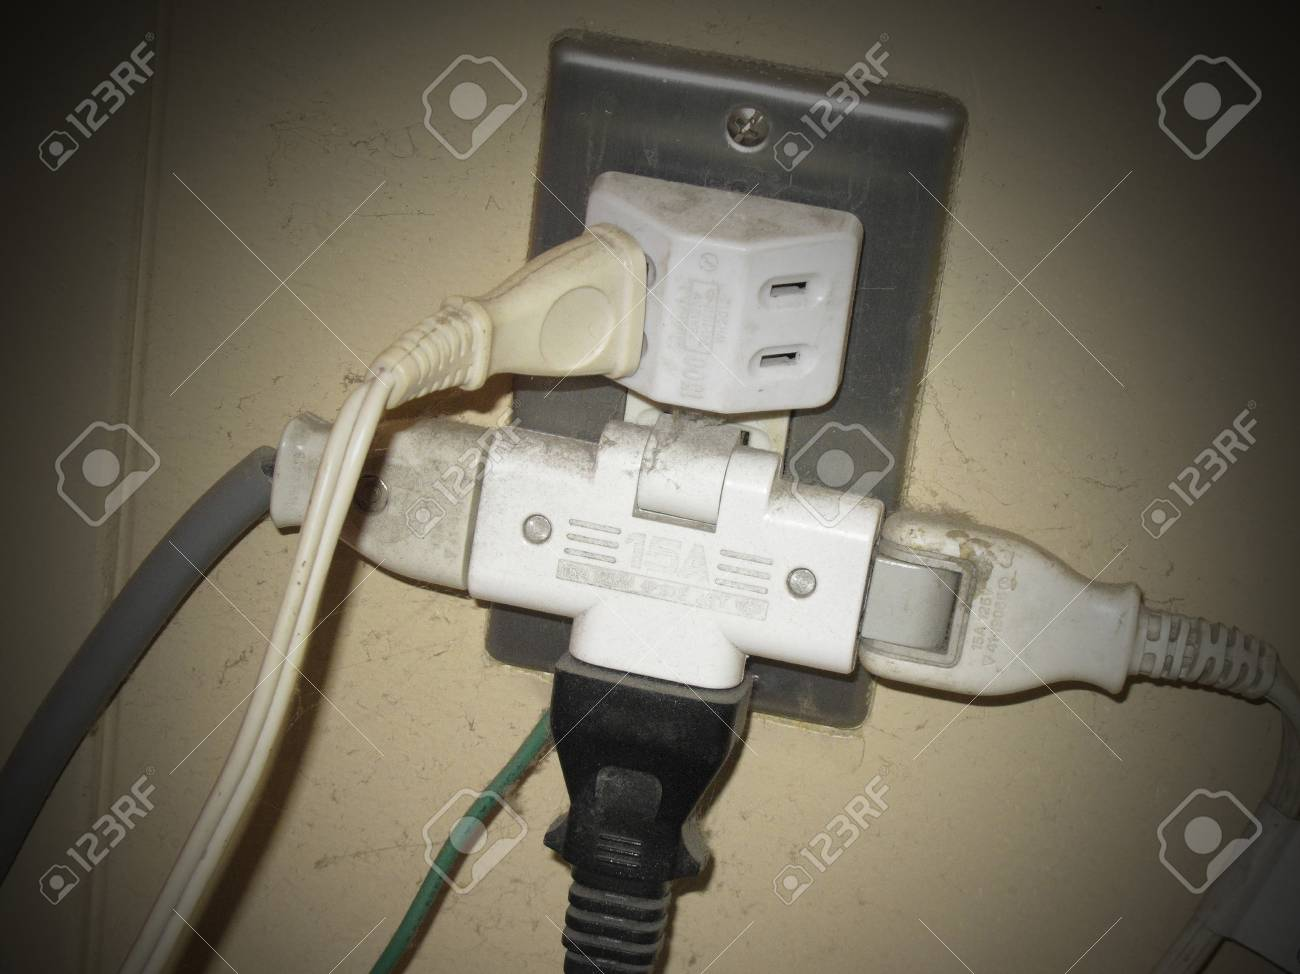 Dangerous Kite Foot Wiring Stock Photo Picture And Royalty Free Electrical 47137068